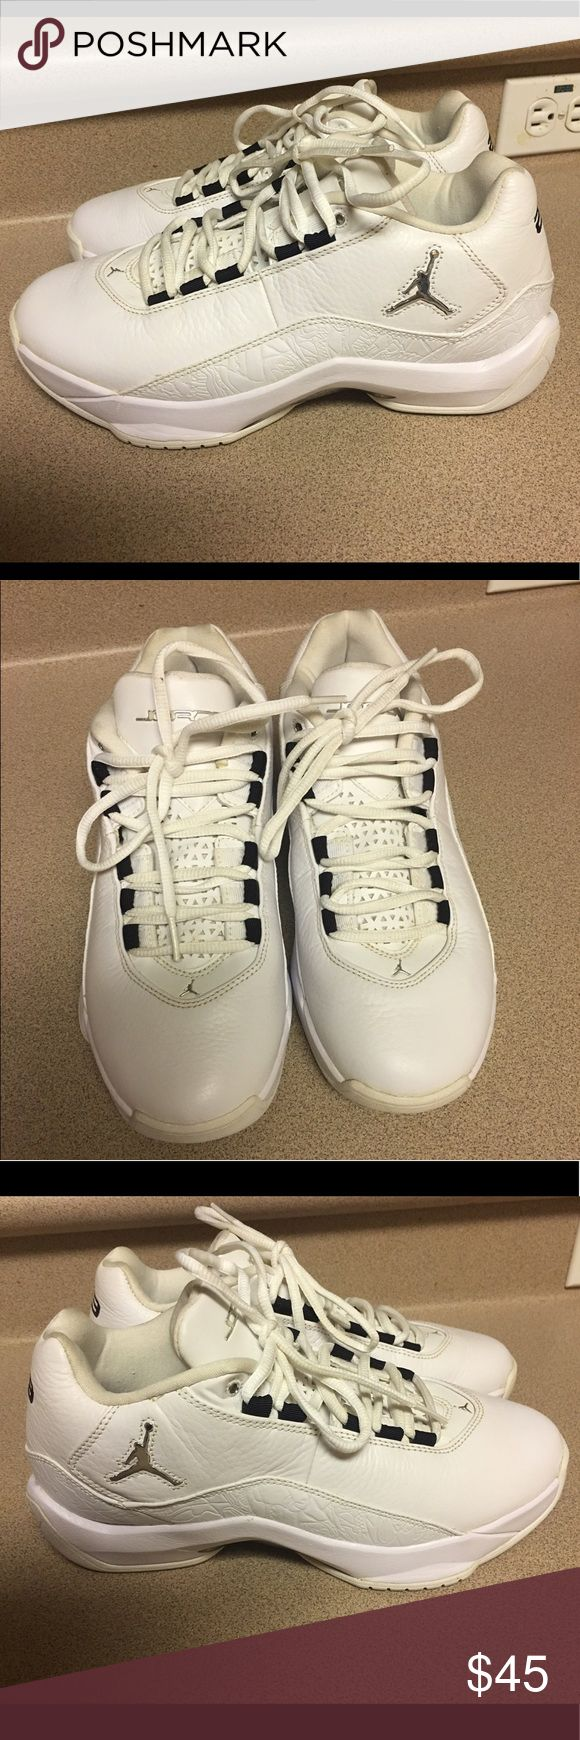 EUC JORDAN FLIGHT 23 SNEAKERS 317707-161 Size 9 This listing is for a pair of Jordan 23 White Sneakers #317707-161, Size 9 in Good Condition. Please see all my pictures. Nike Shoes Athletic Shoes